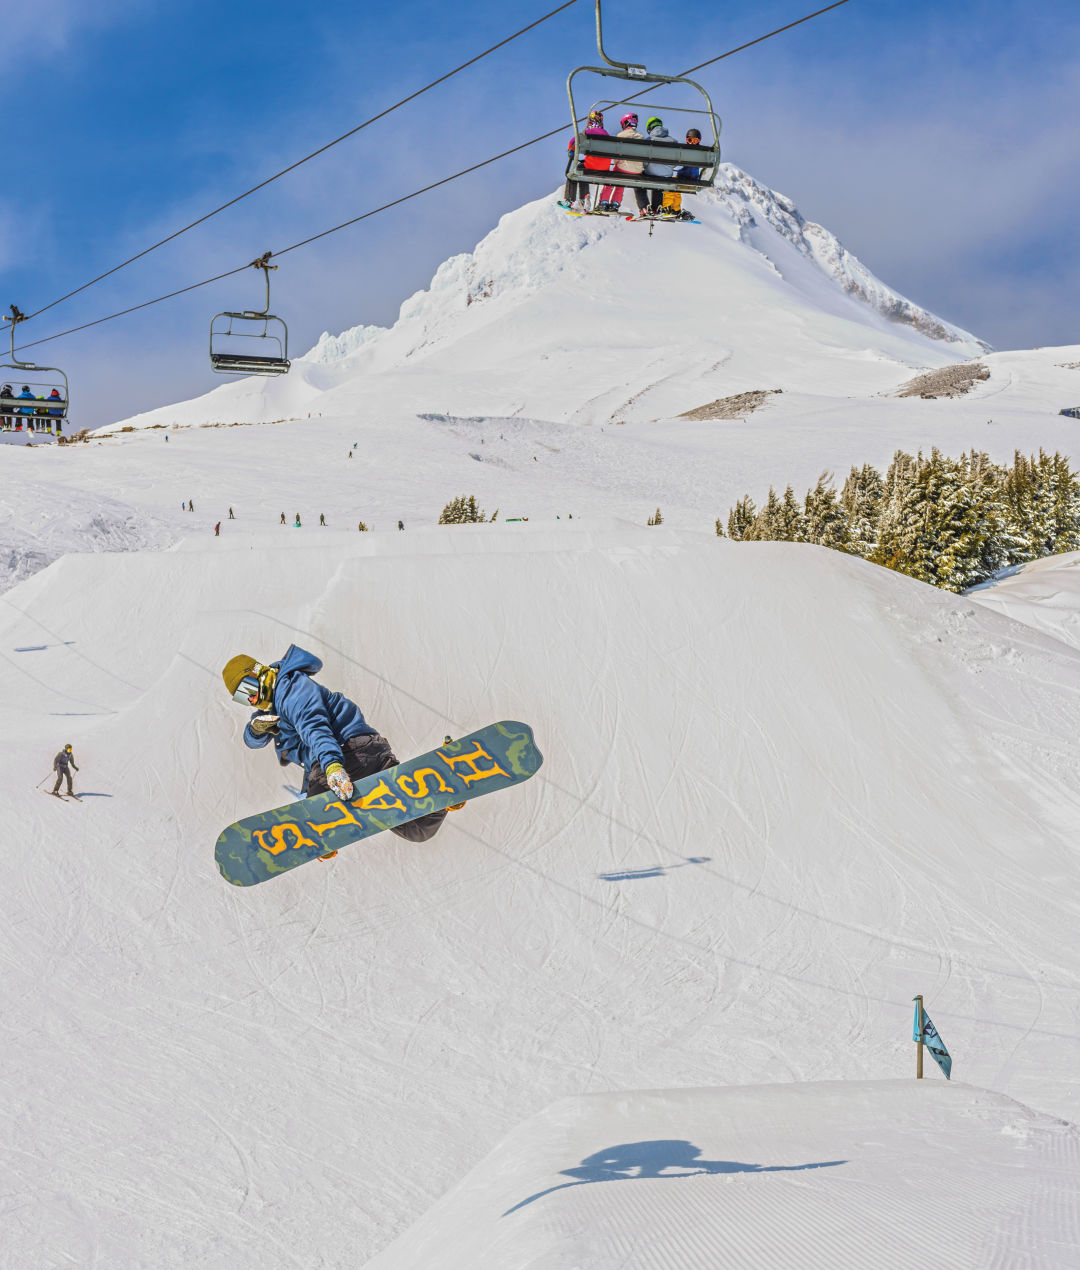 A Guide to Mount Hood's Ski Resorts | Portland Monthly on map of damascus, map of columbia river, map of lakeview, map of columbia gorge, map of crater lake, map of gleneden beach, map of hillsboro, map of oregon, map of rogue river, map of milton freewater, map of cave junction, map of rainier, map of ontario, map of junction city, map of grants pass, map of cottage grove, map of mount hood area, map of hood river, map of john day, map of lebanon,